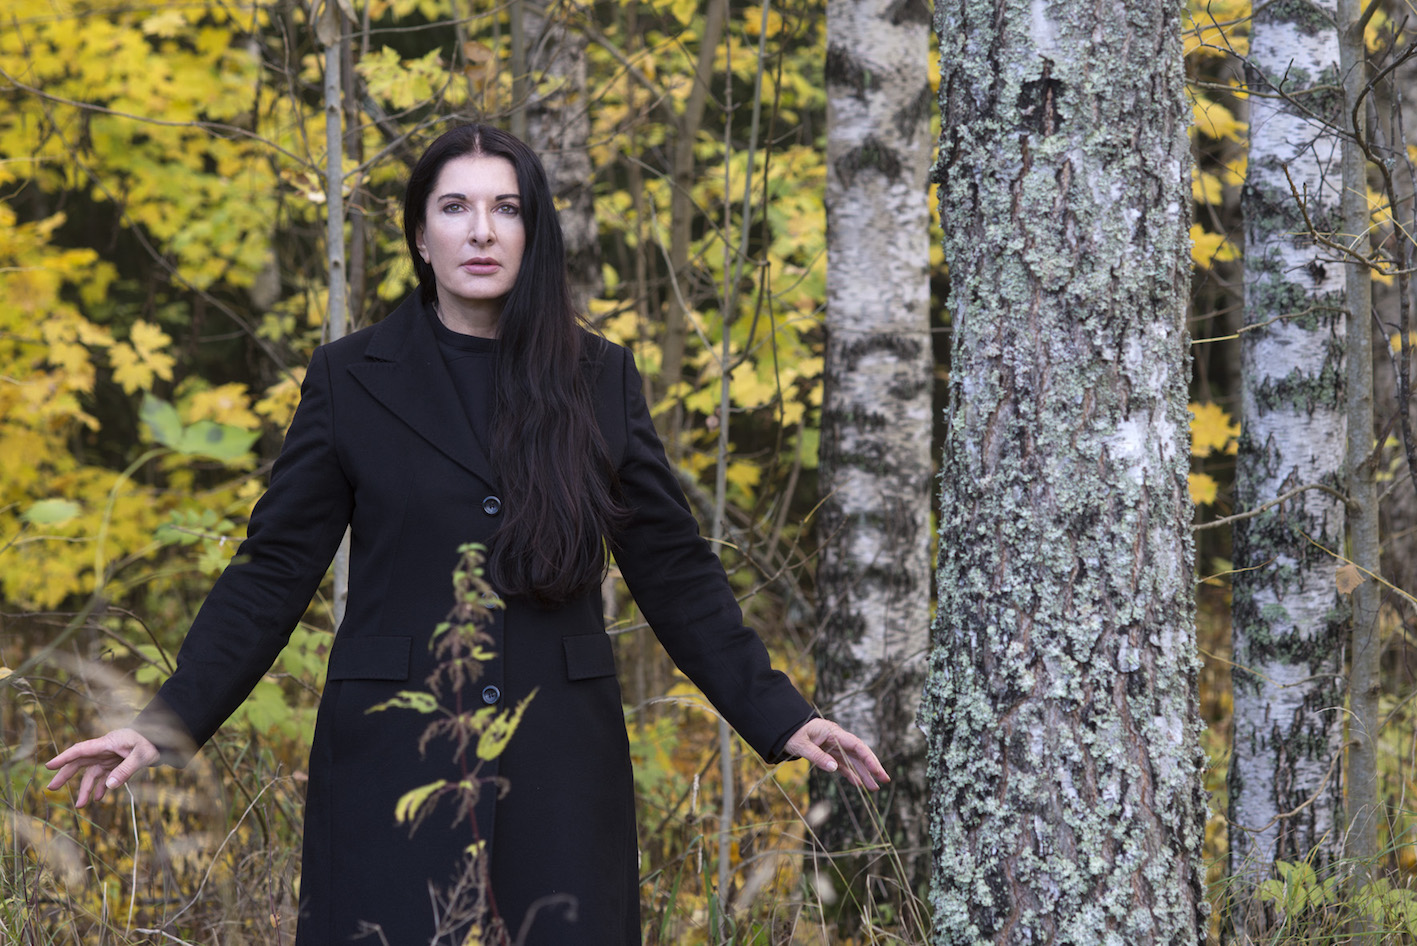 Marina Abramović, The Rest Is Silence, 2013. Photo: Knut Bry and Ekebergeparken Oslo.